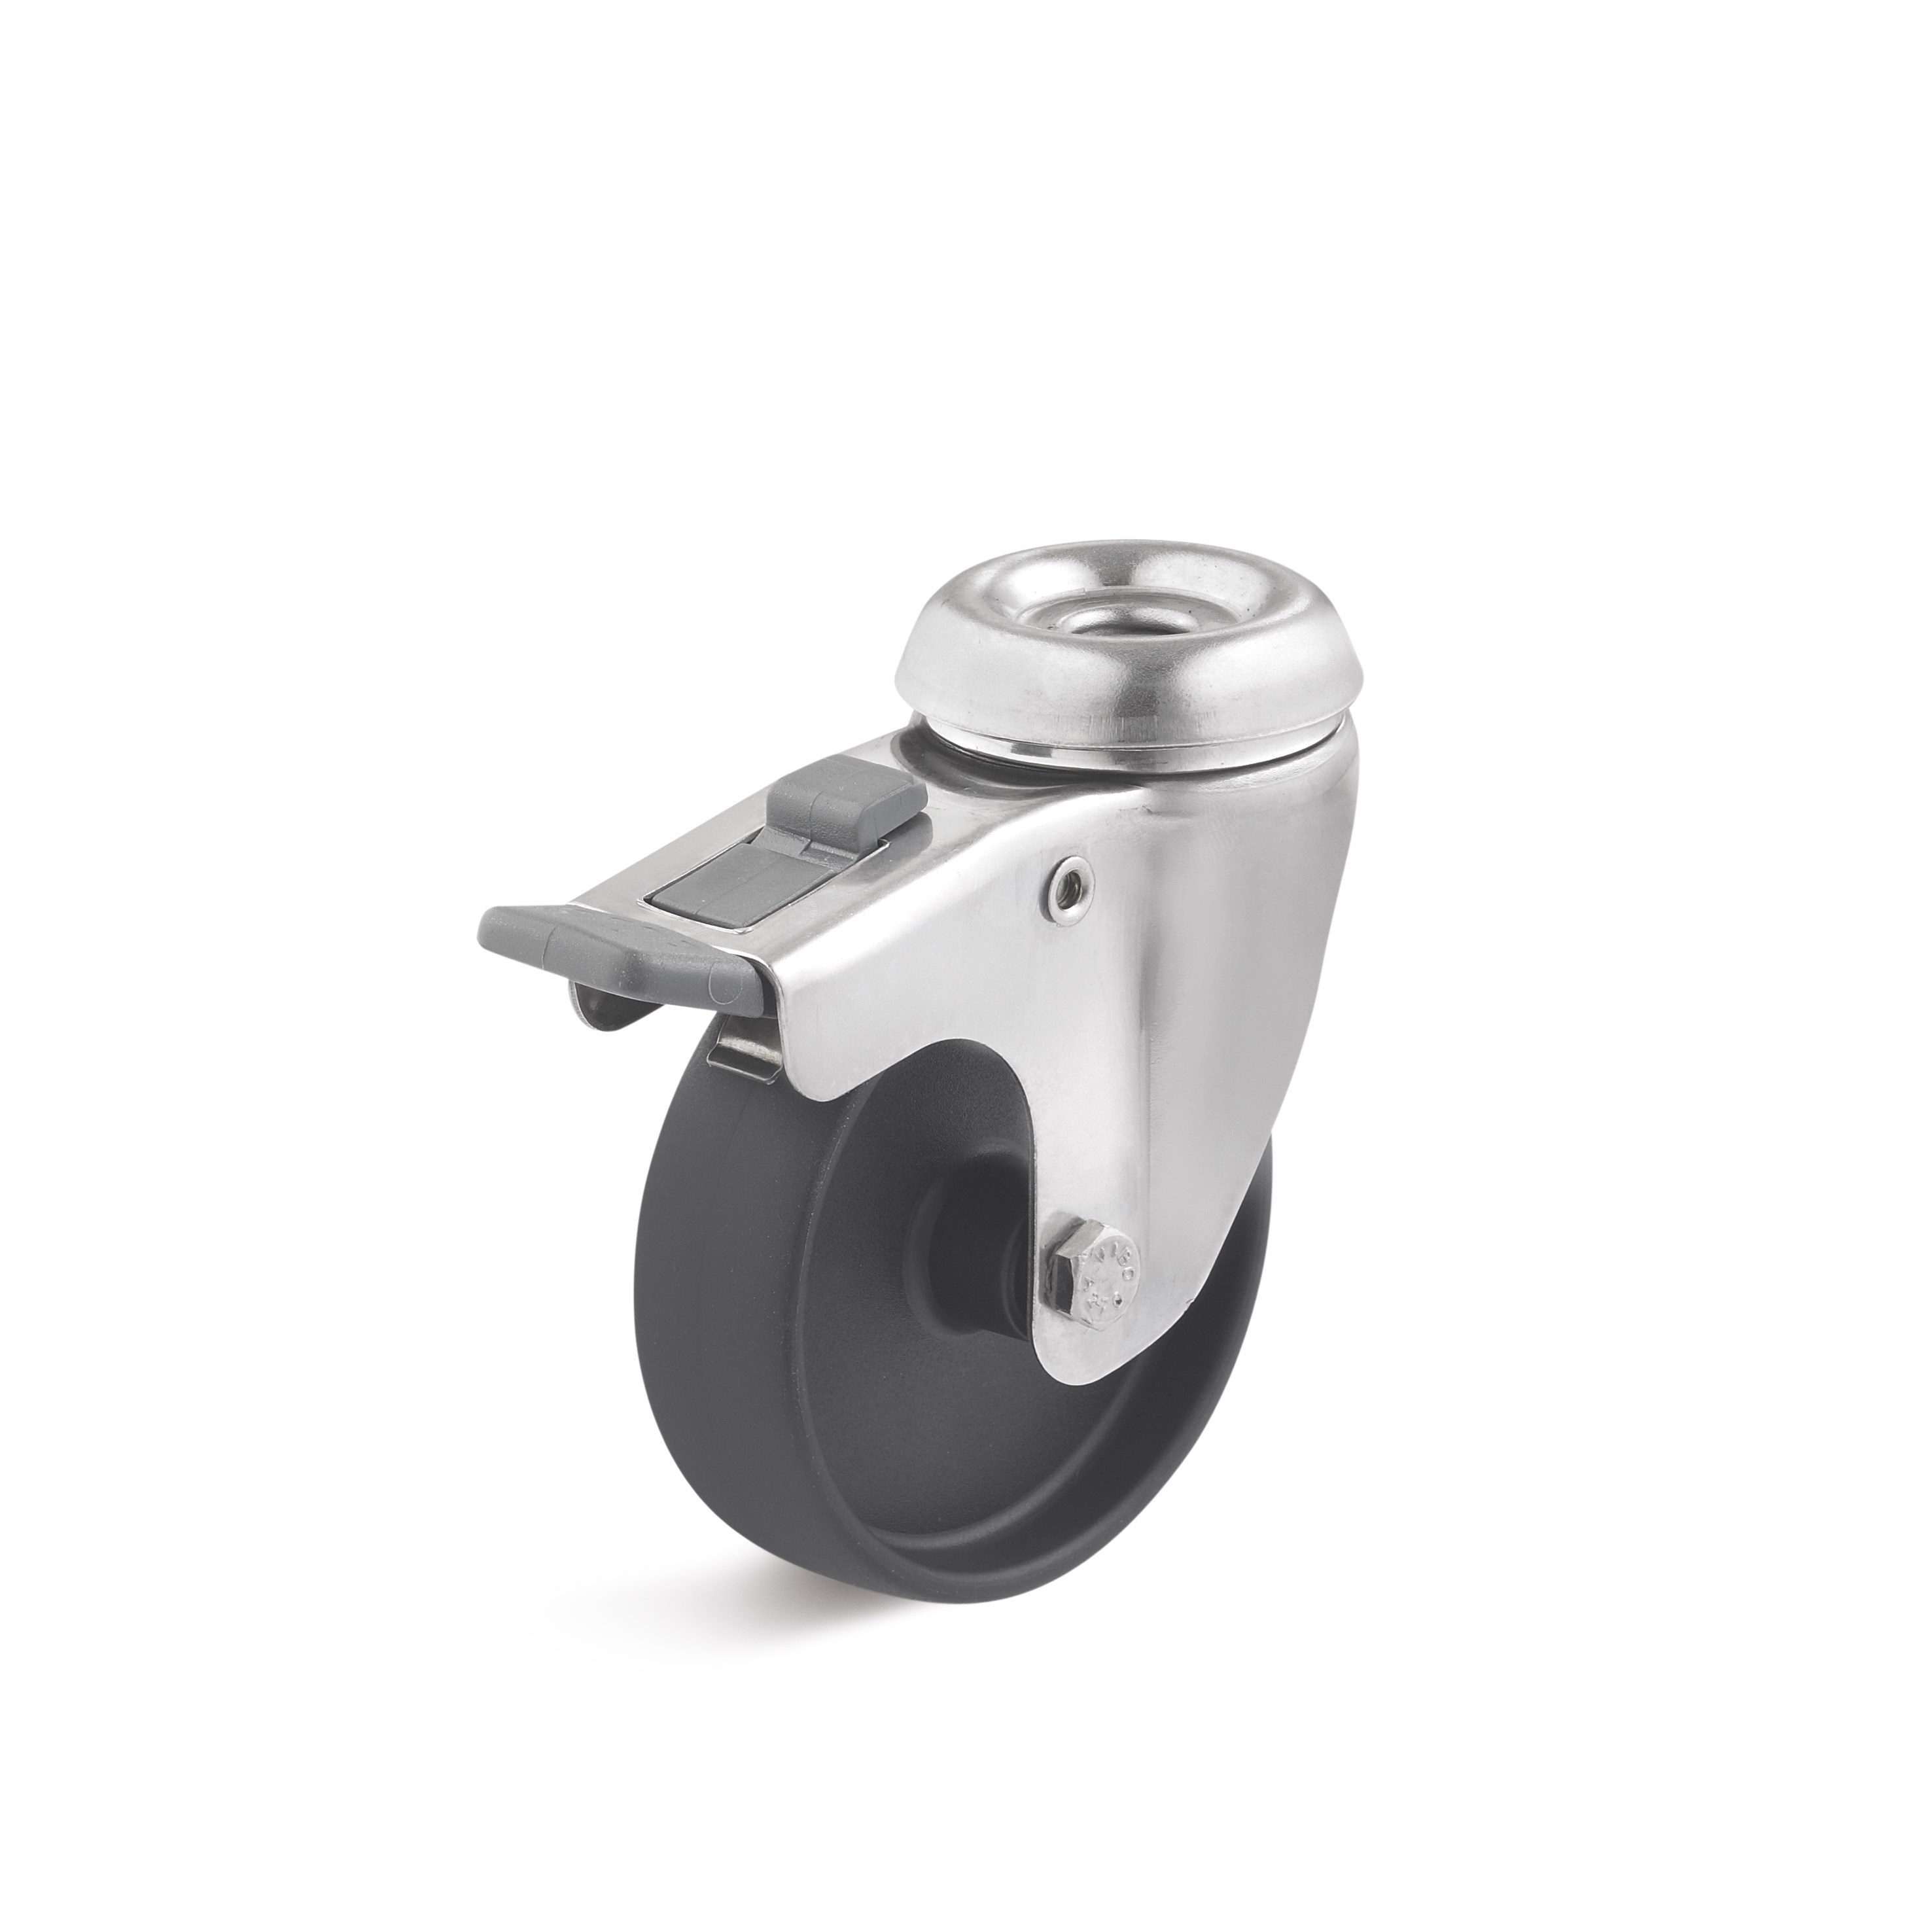 Stainless steel swivel castor with double stop, rear hole attachment, polyamide wheel